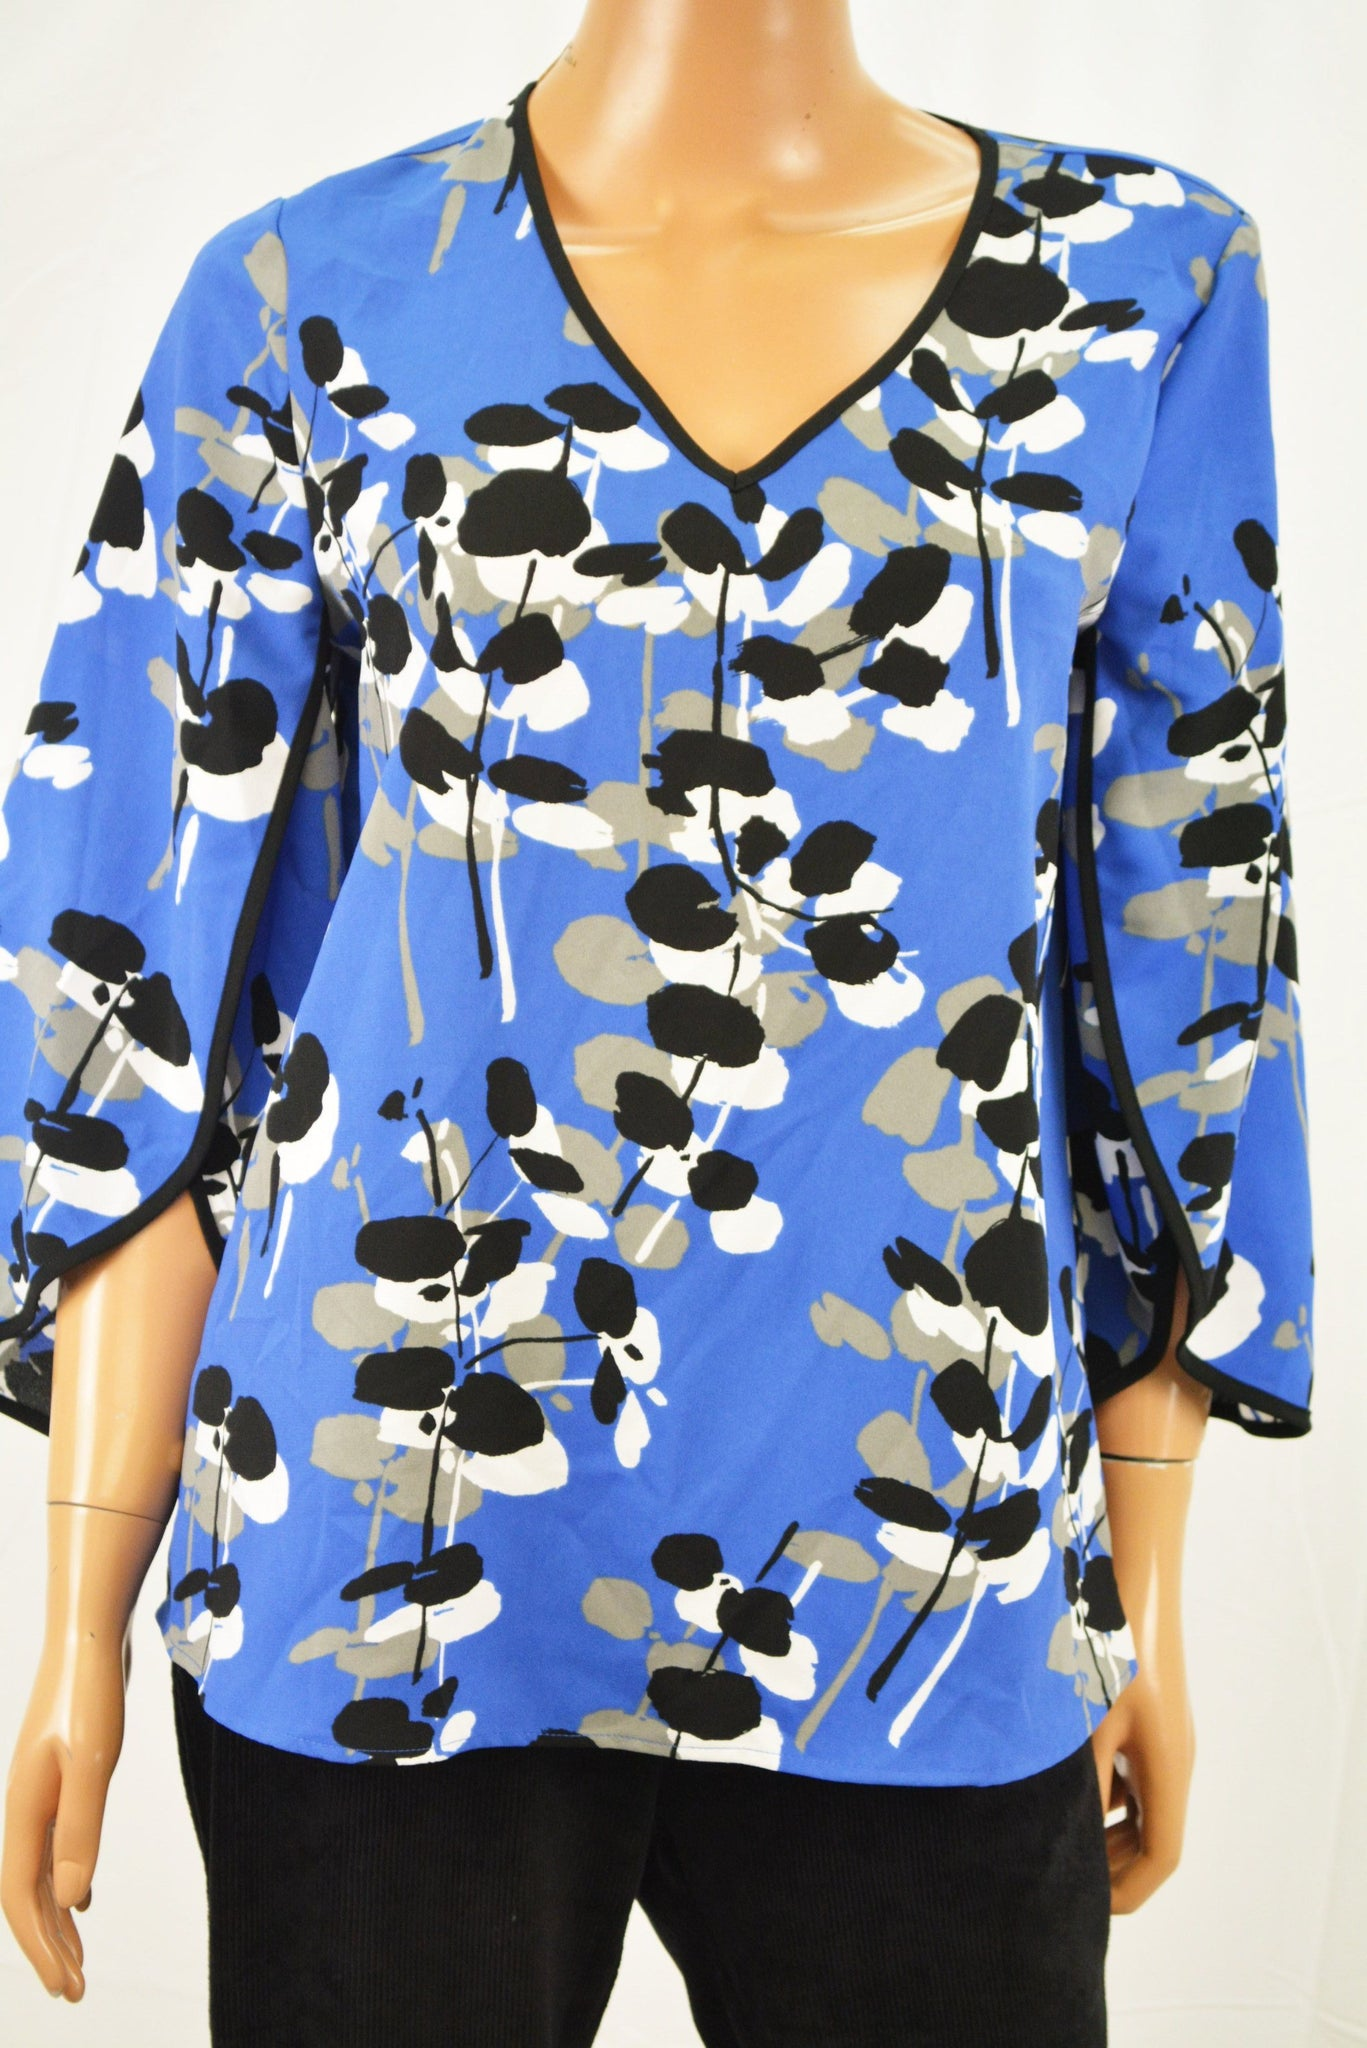 Alfani Women's Envelop Sleeve Blue Printed Blouse Top Petite 8